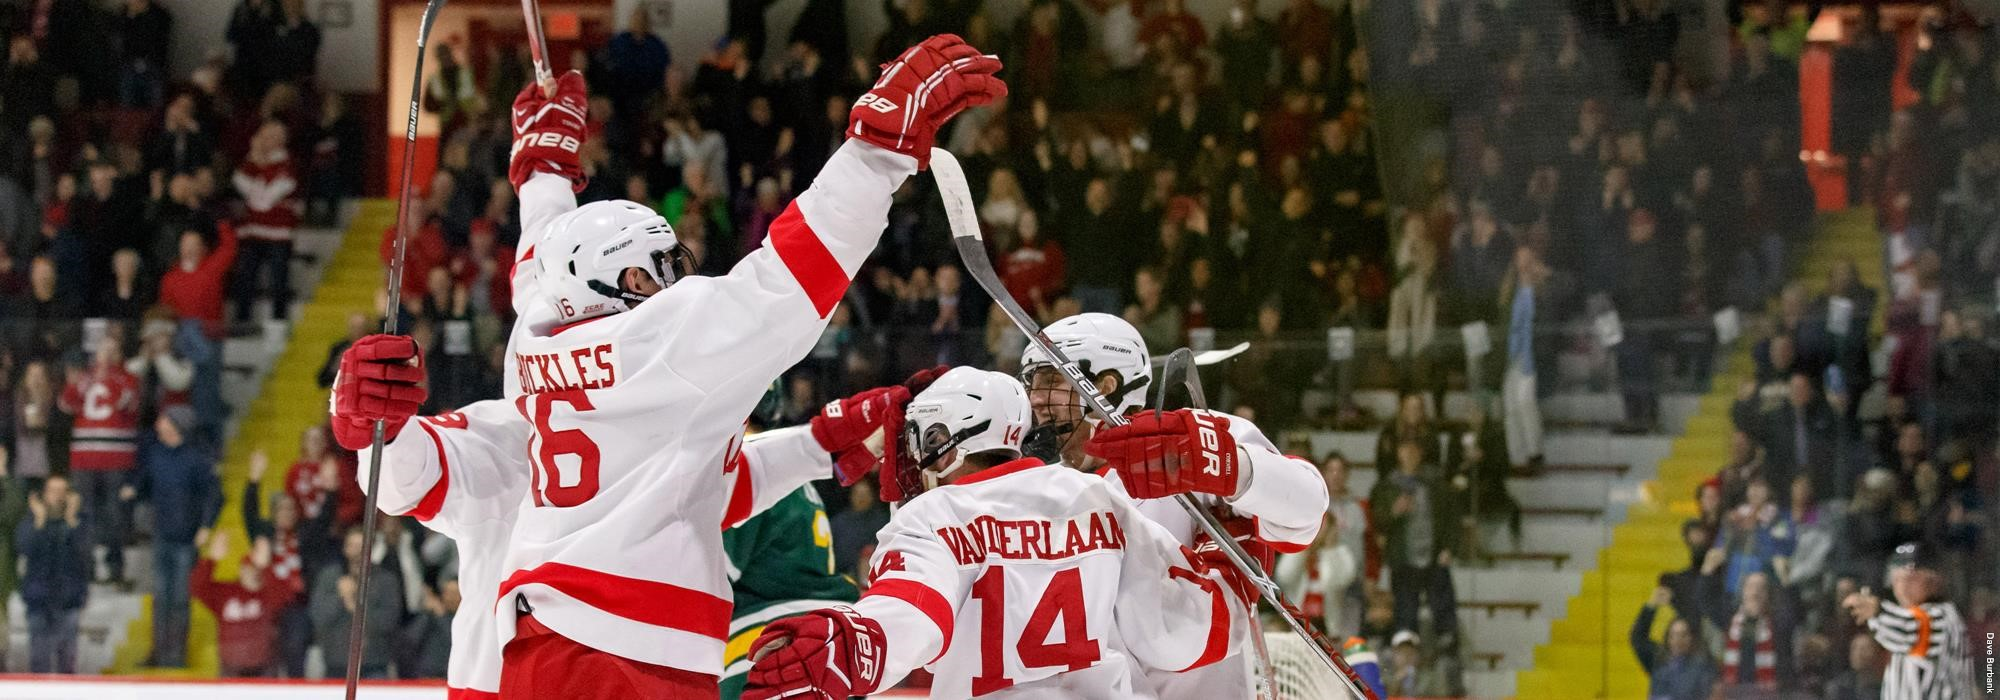 Cornell ties with Clarkson